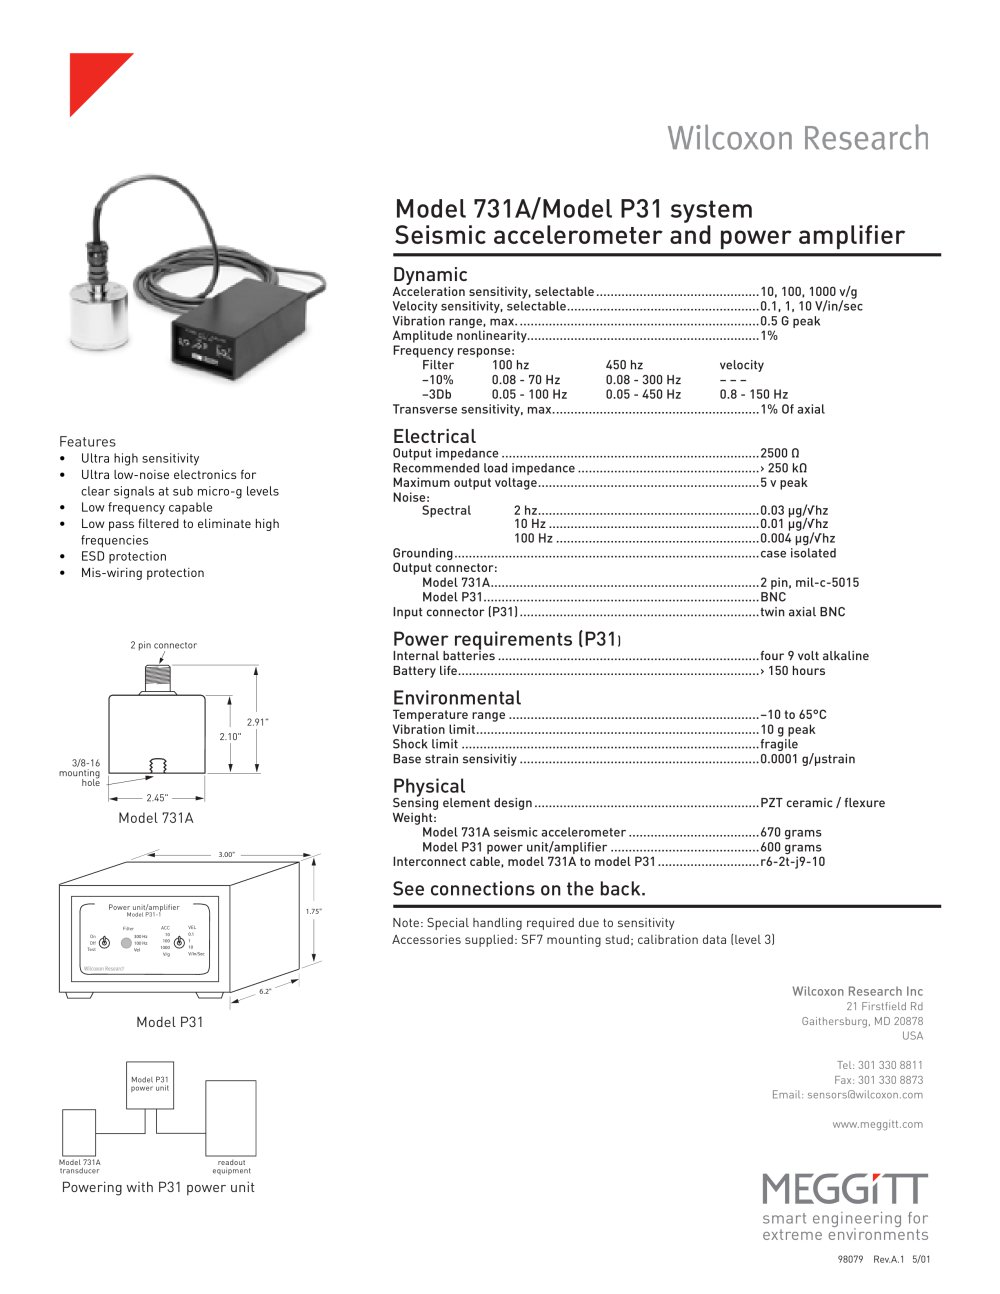 731a P31 Seismic Accelerometer System Wilcoxon Sensing Wiring Diagram To Eliminate Battery Save 1 2 Pages